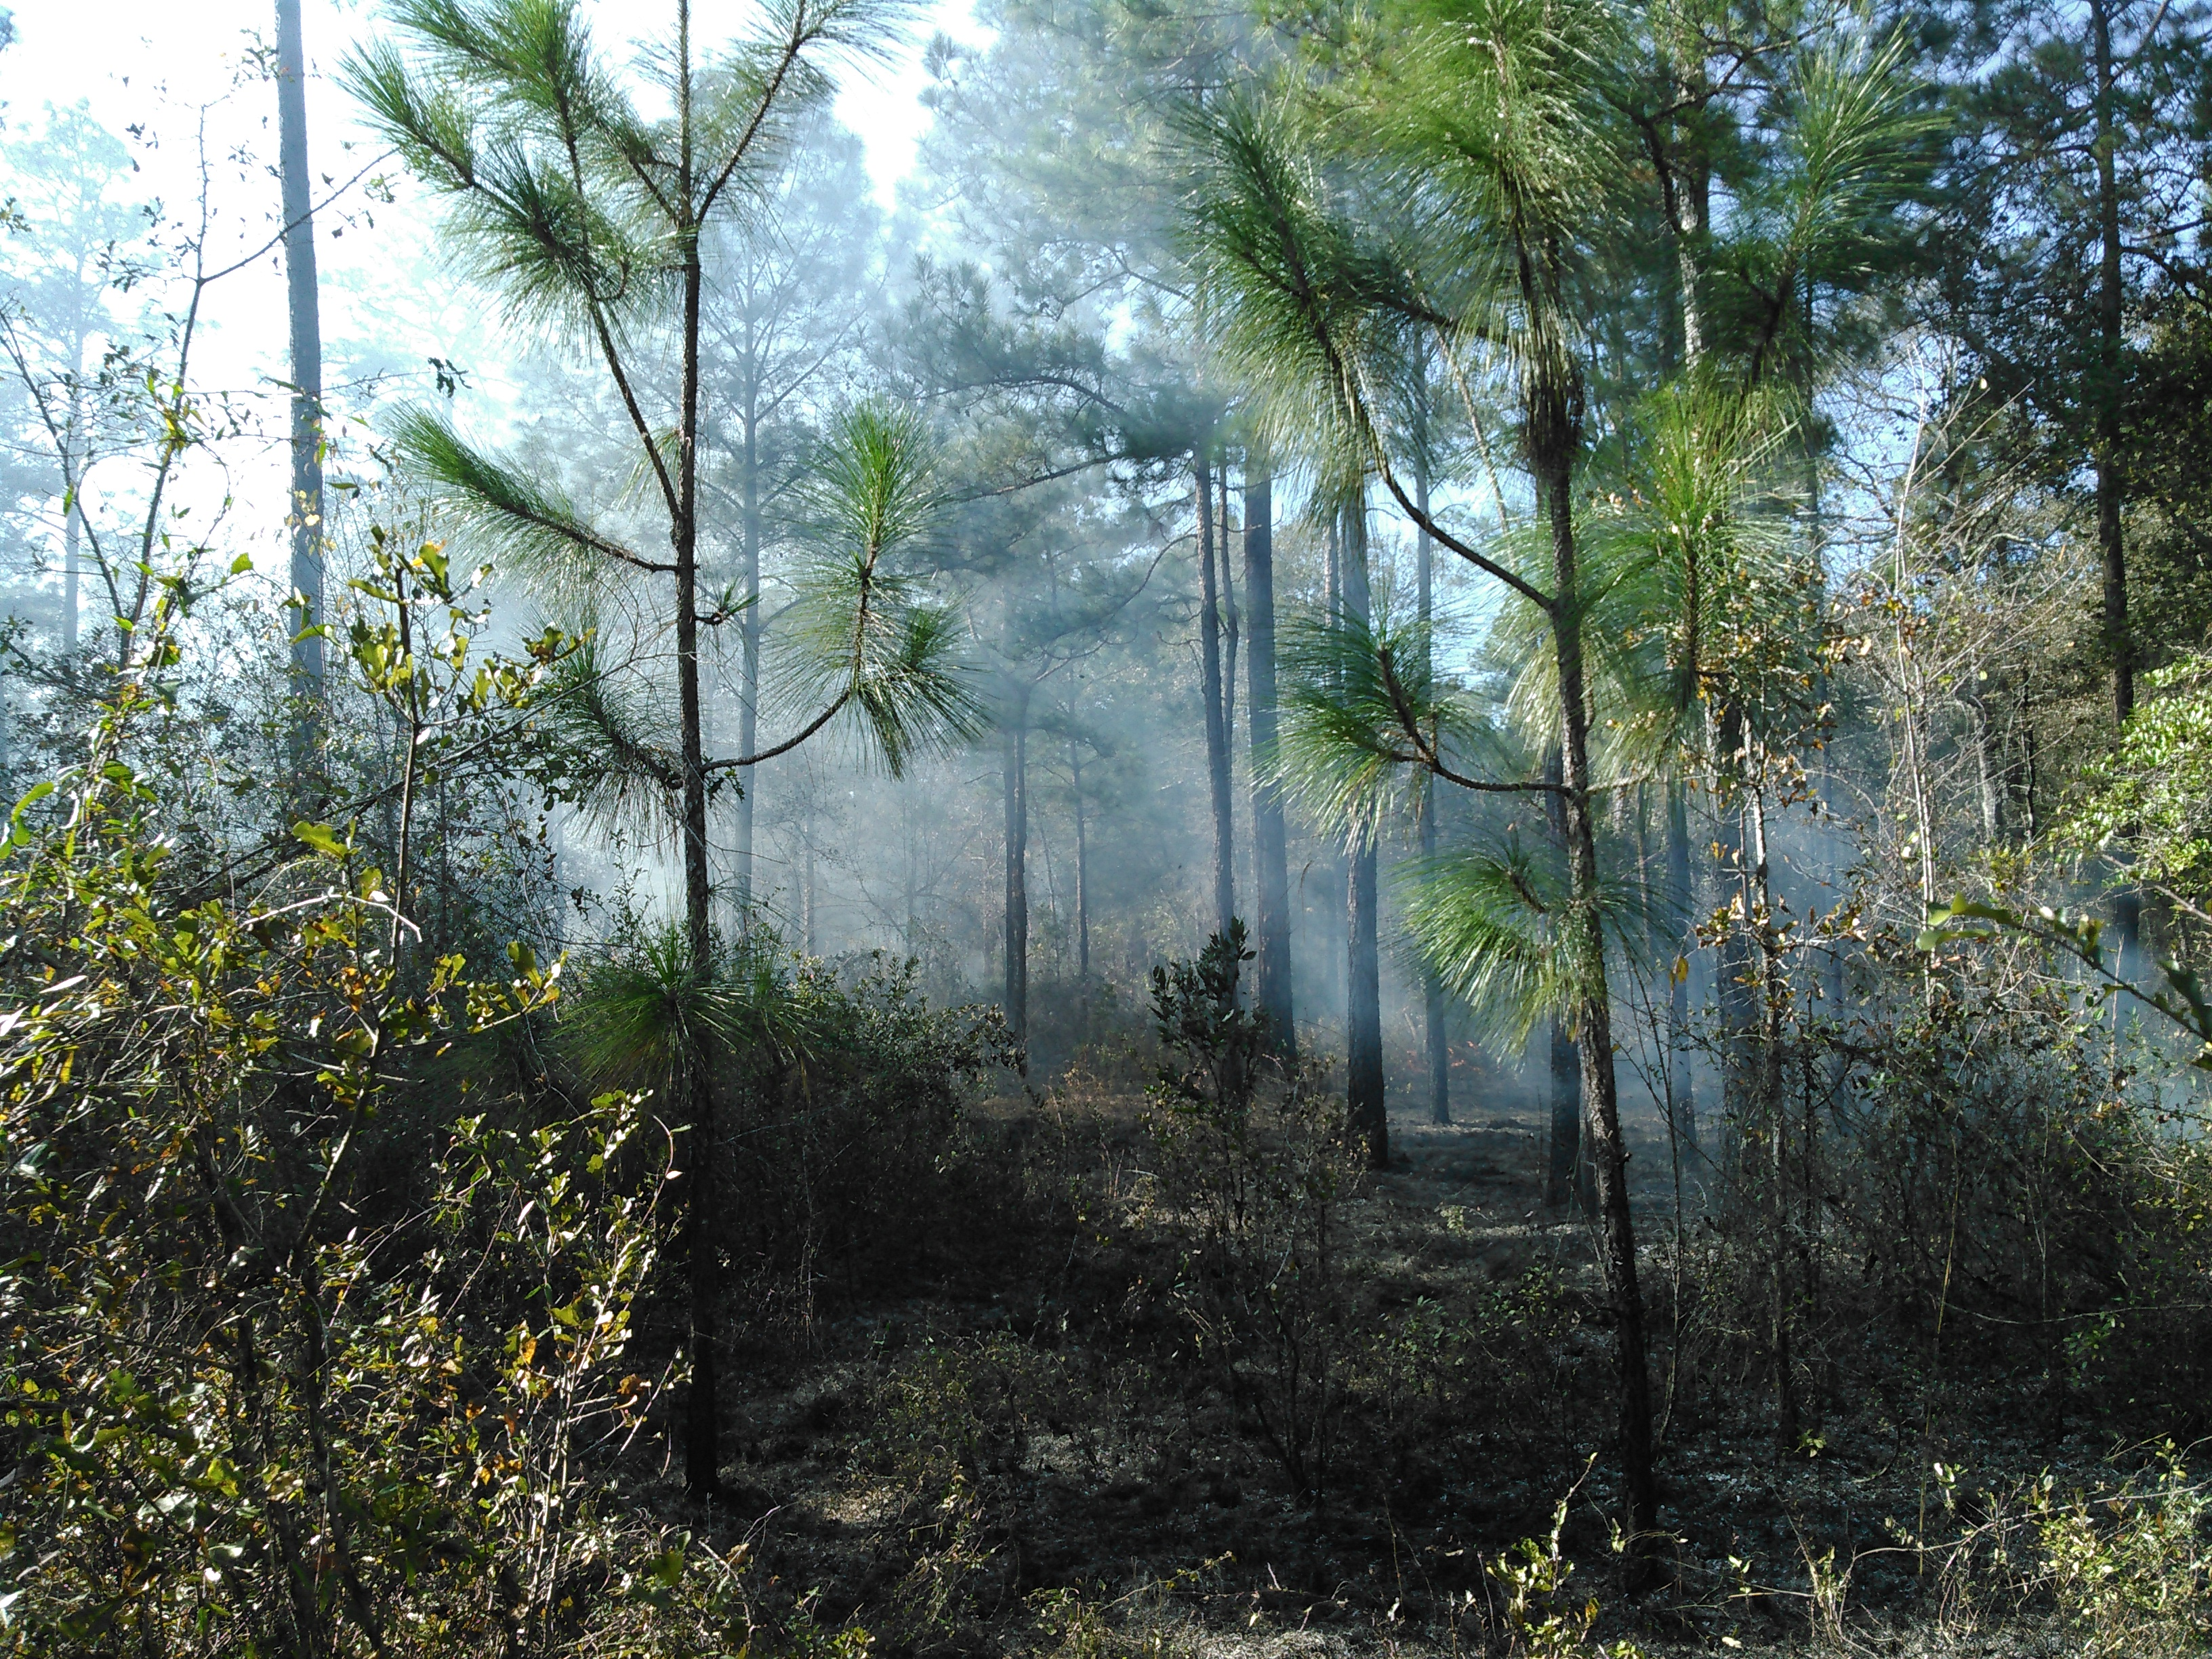 3264x2448 Why we burn: longleaf unharmed, in Prescribed burn, by John S. Quarterman, for OkraParadiseFarms.com, 5 December 2015